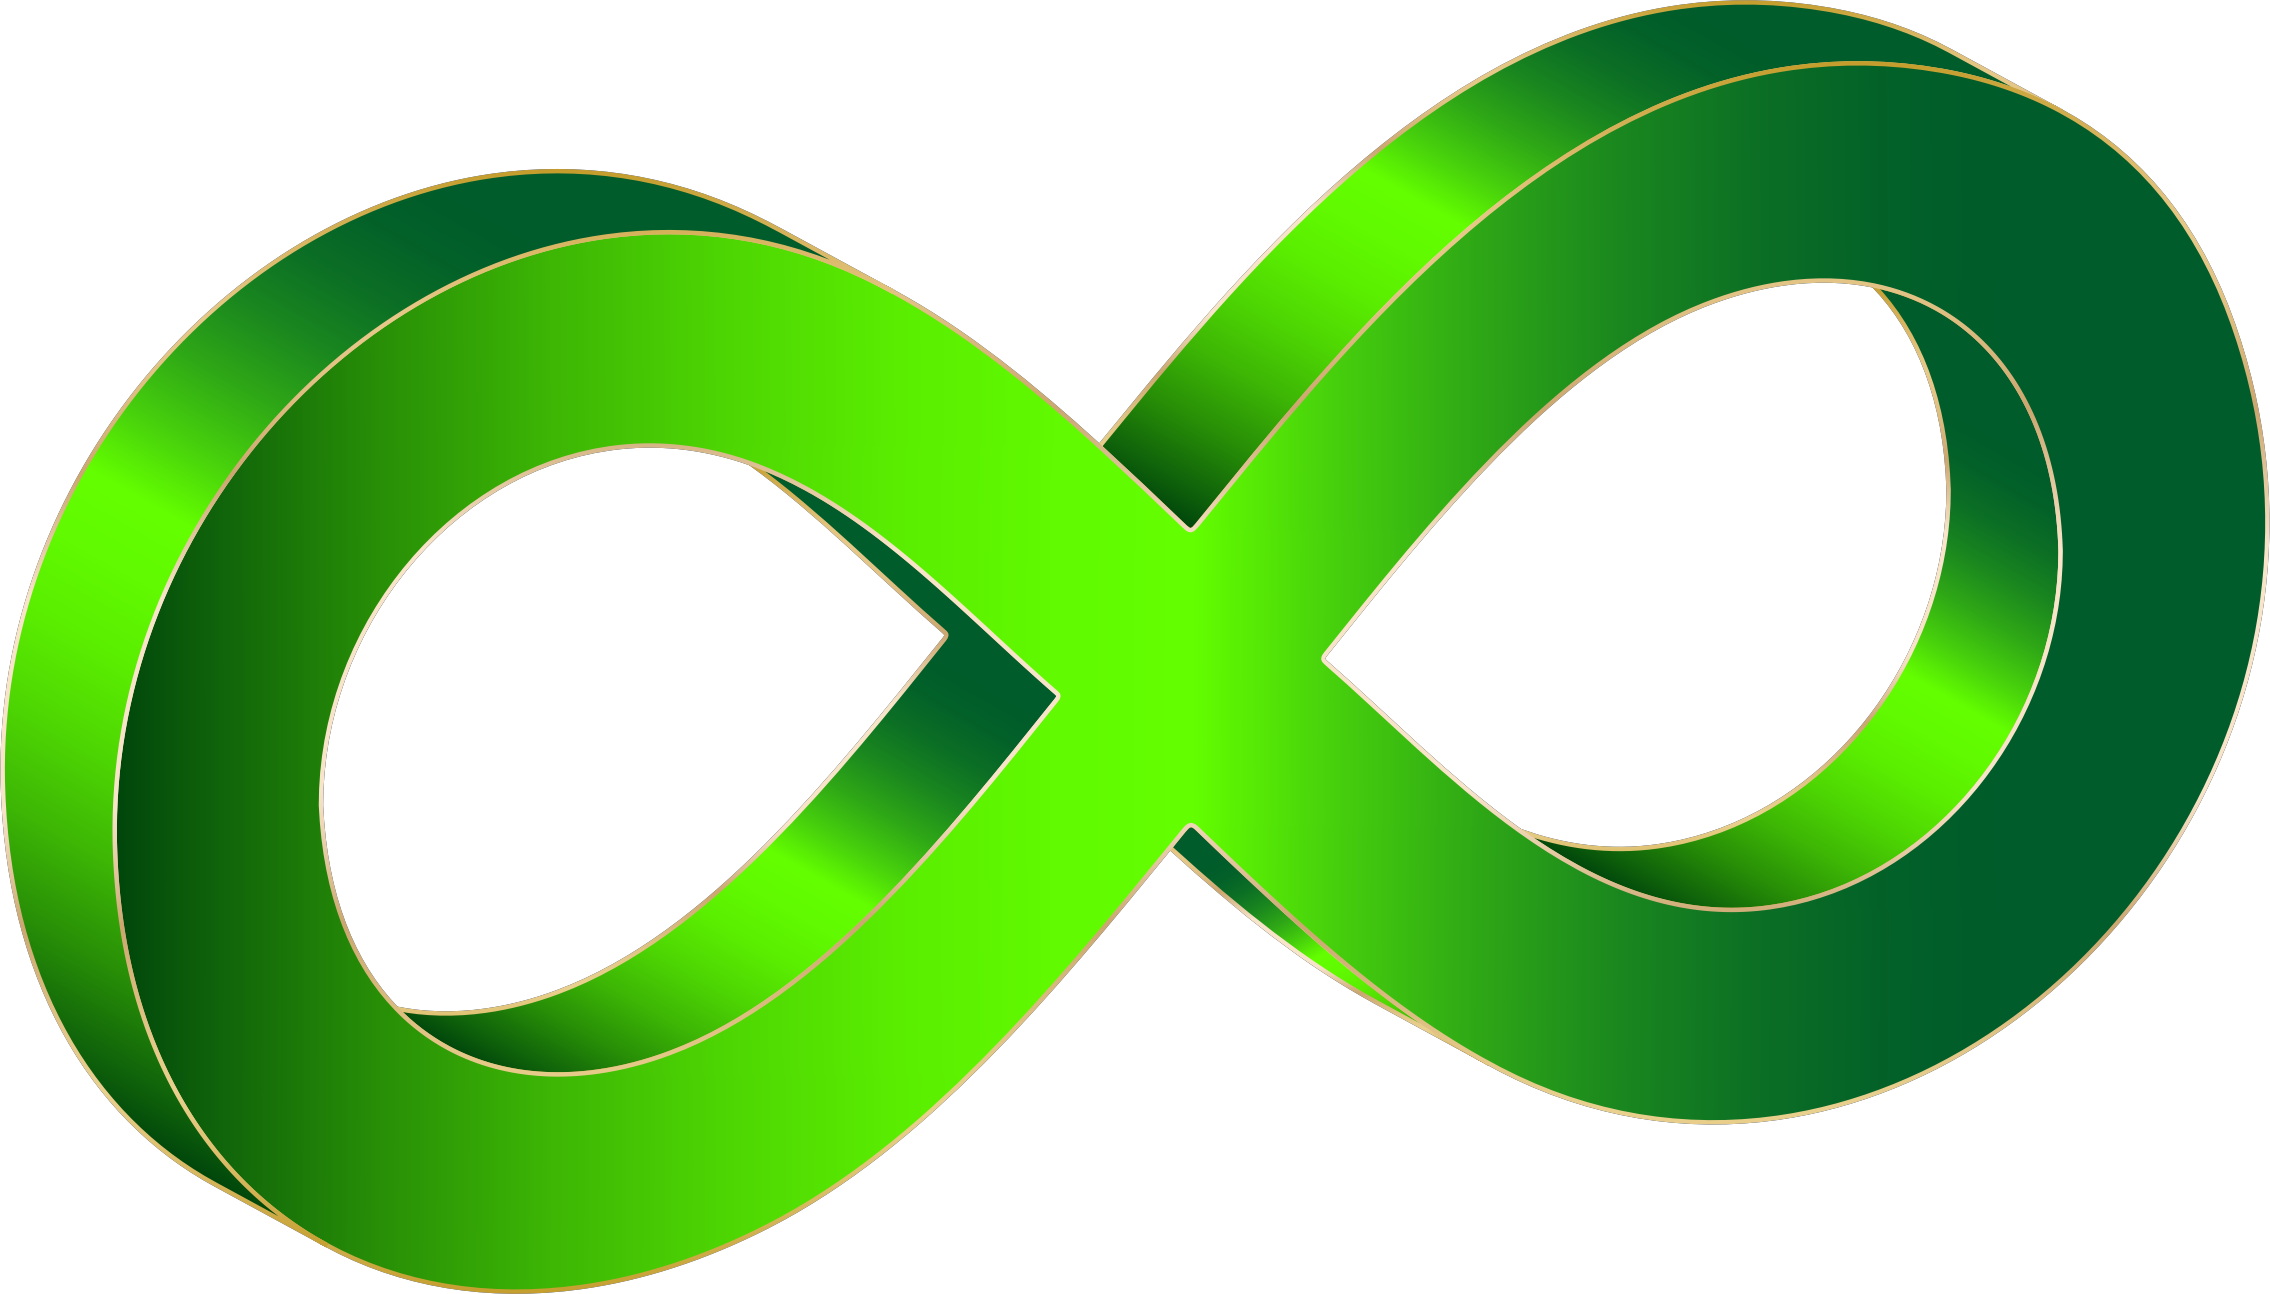 Infinity symbol png images free download infinity symbol png biocorpaavc Gallery